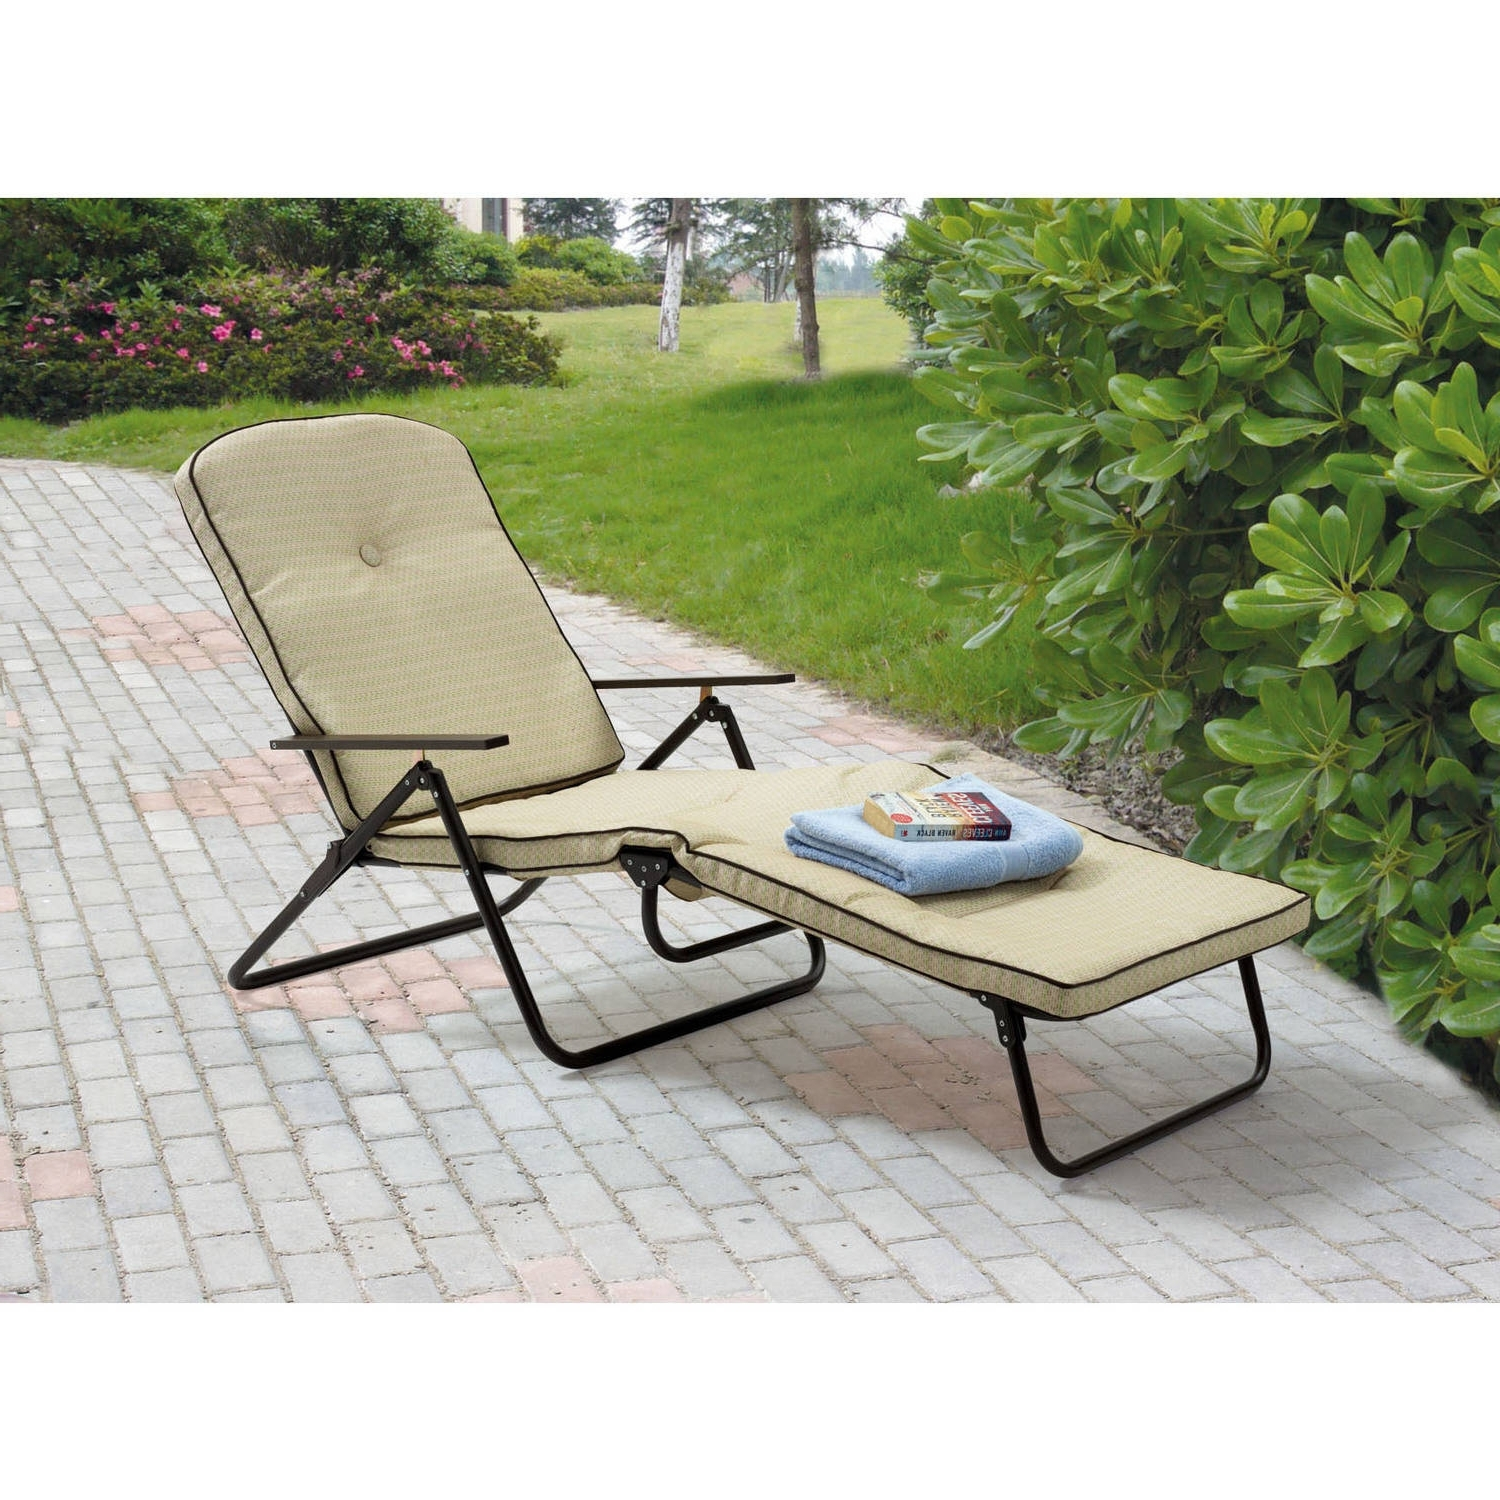 2018 Mainstays Sand Dune Outdoor Padded Folding Chaise Lounge, Tan For Foldable Chaise Lounge Outdoor Chairs (View 1 of 15)